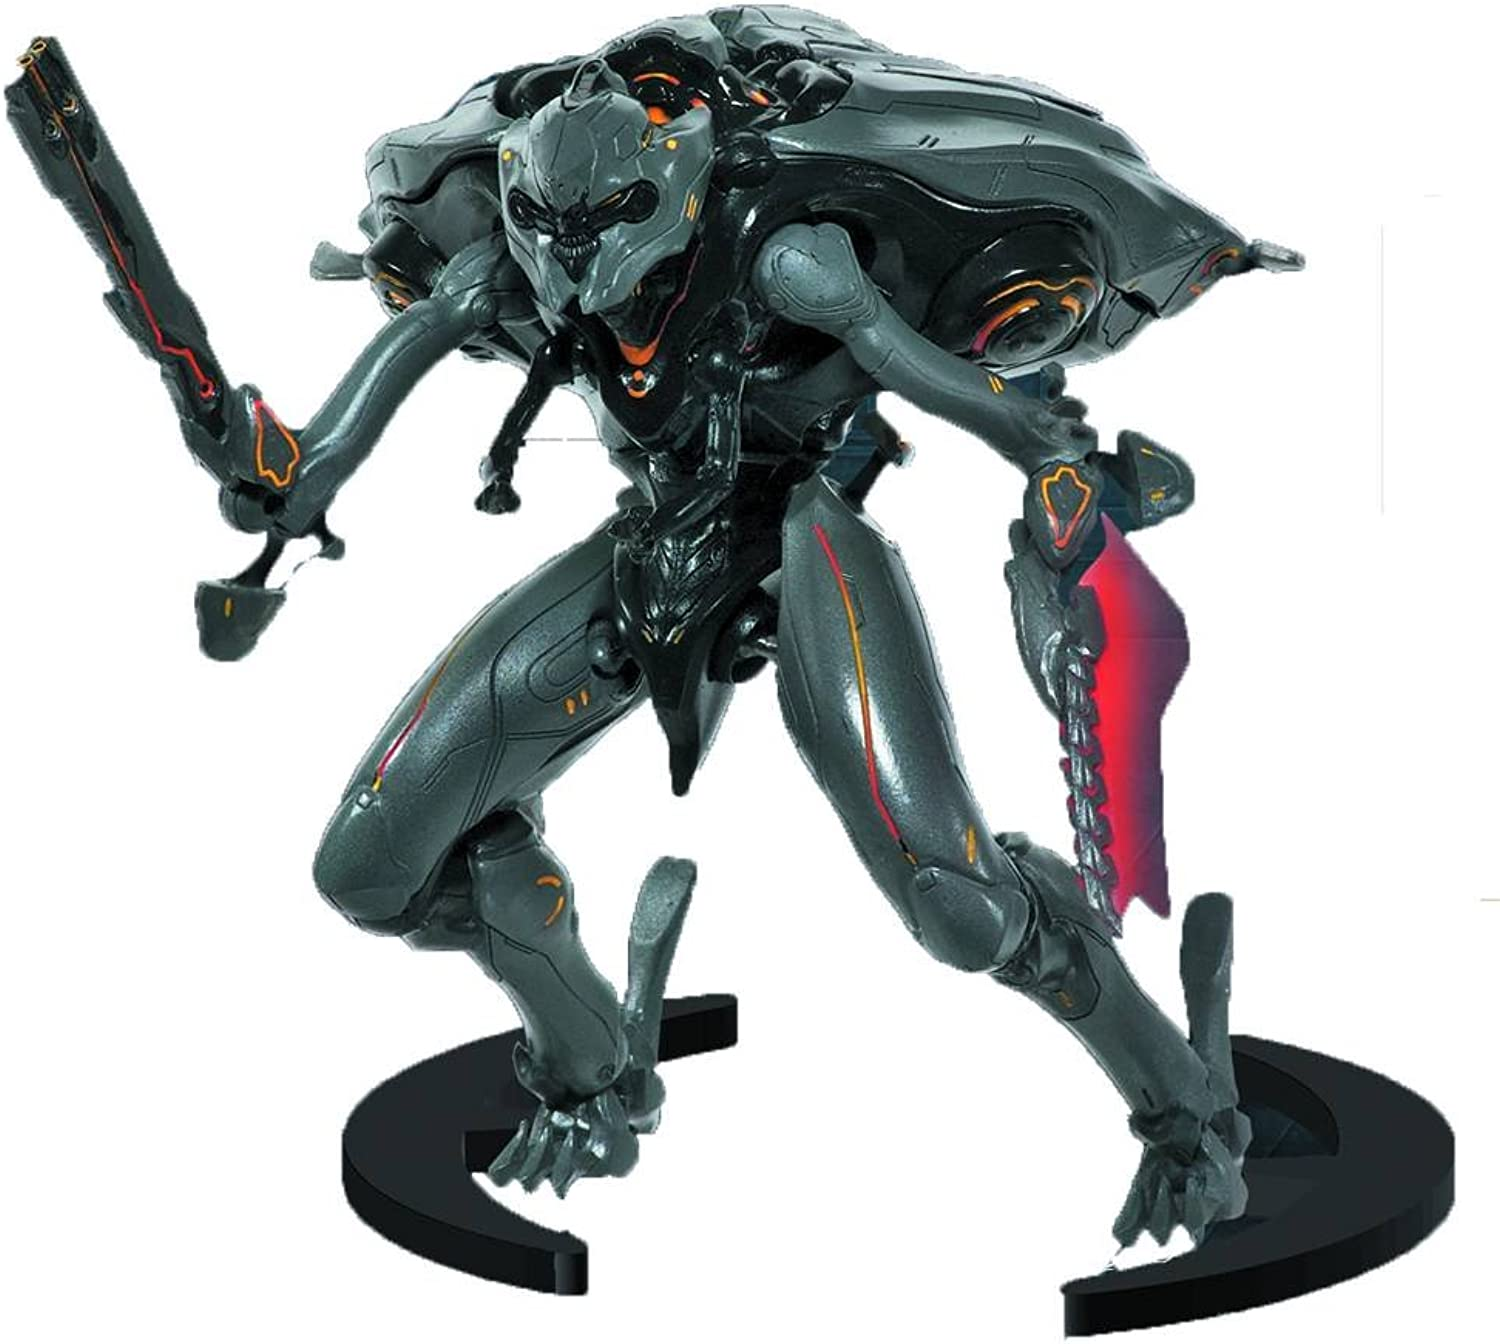 Halo 4 Series 1 Knight Deluxe Action Figur